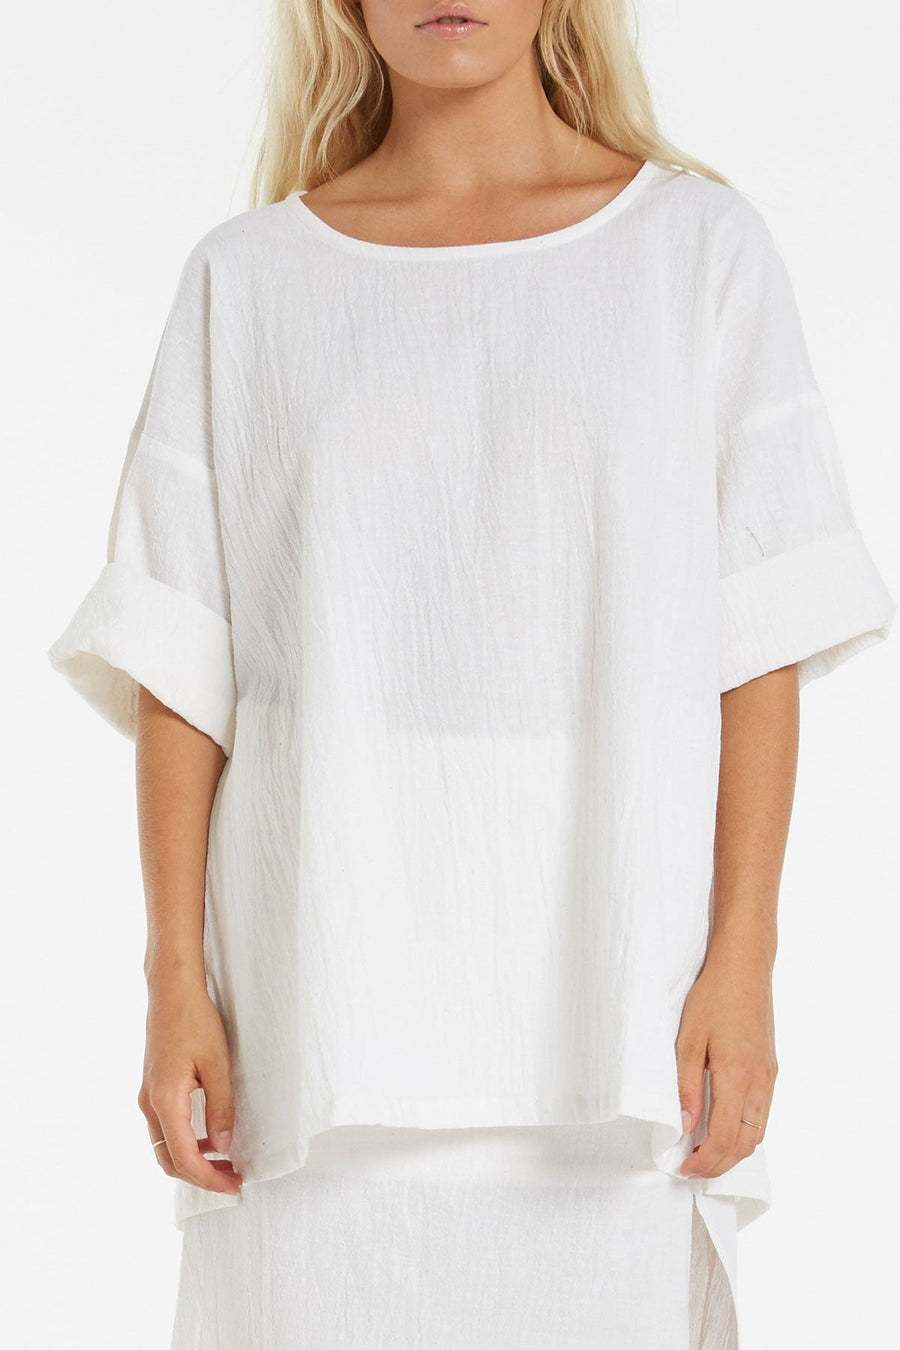 Zulu & Zephyr Mist Top Warm White